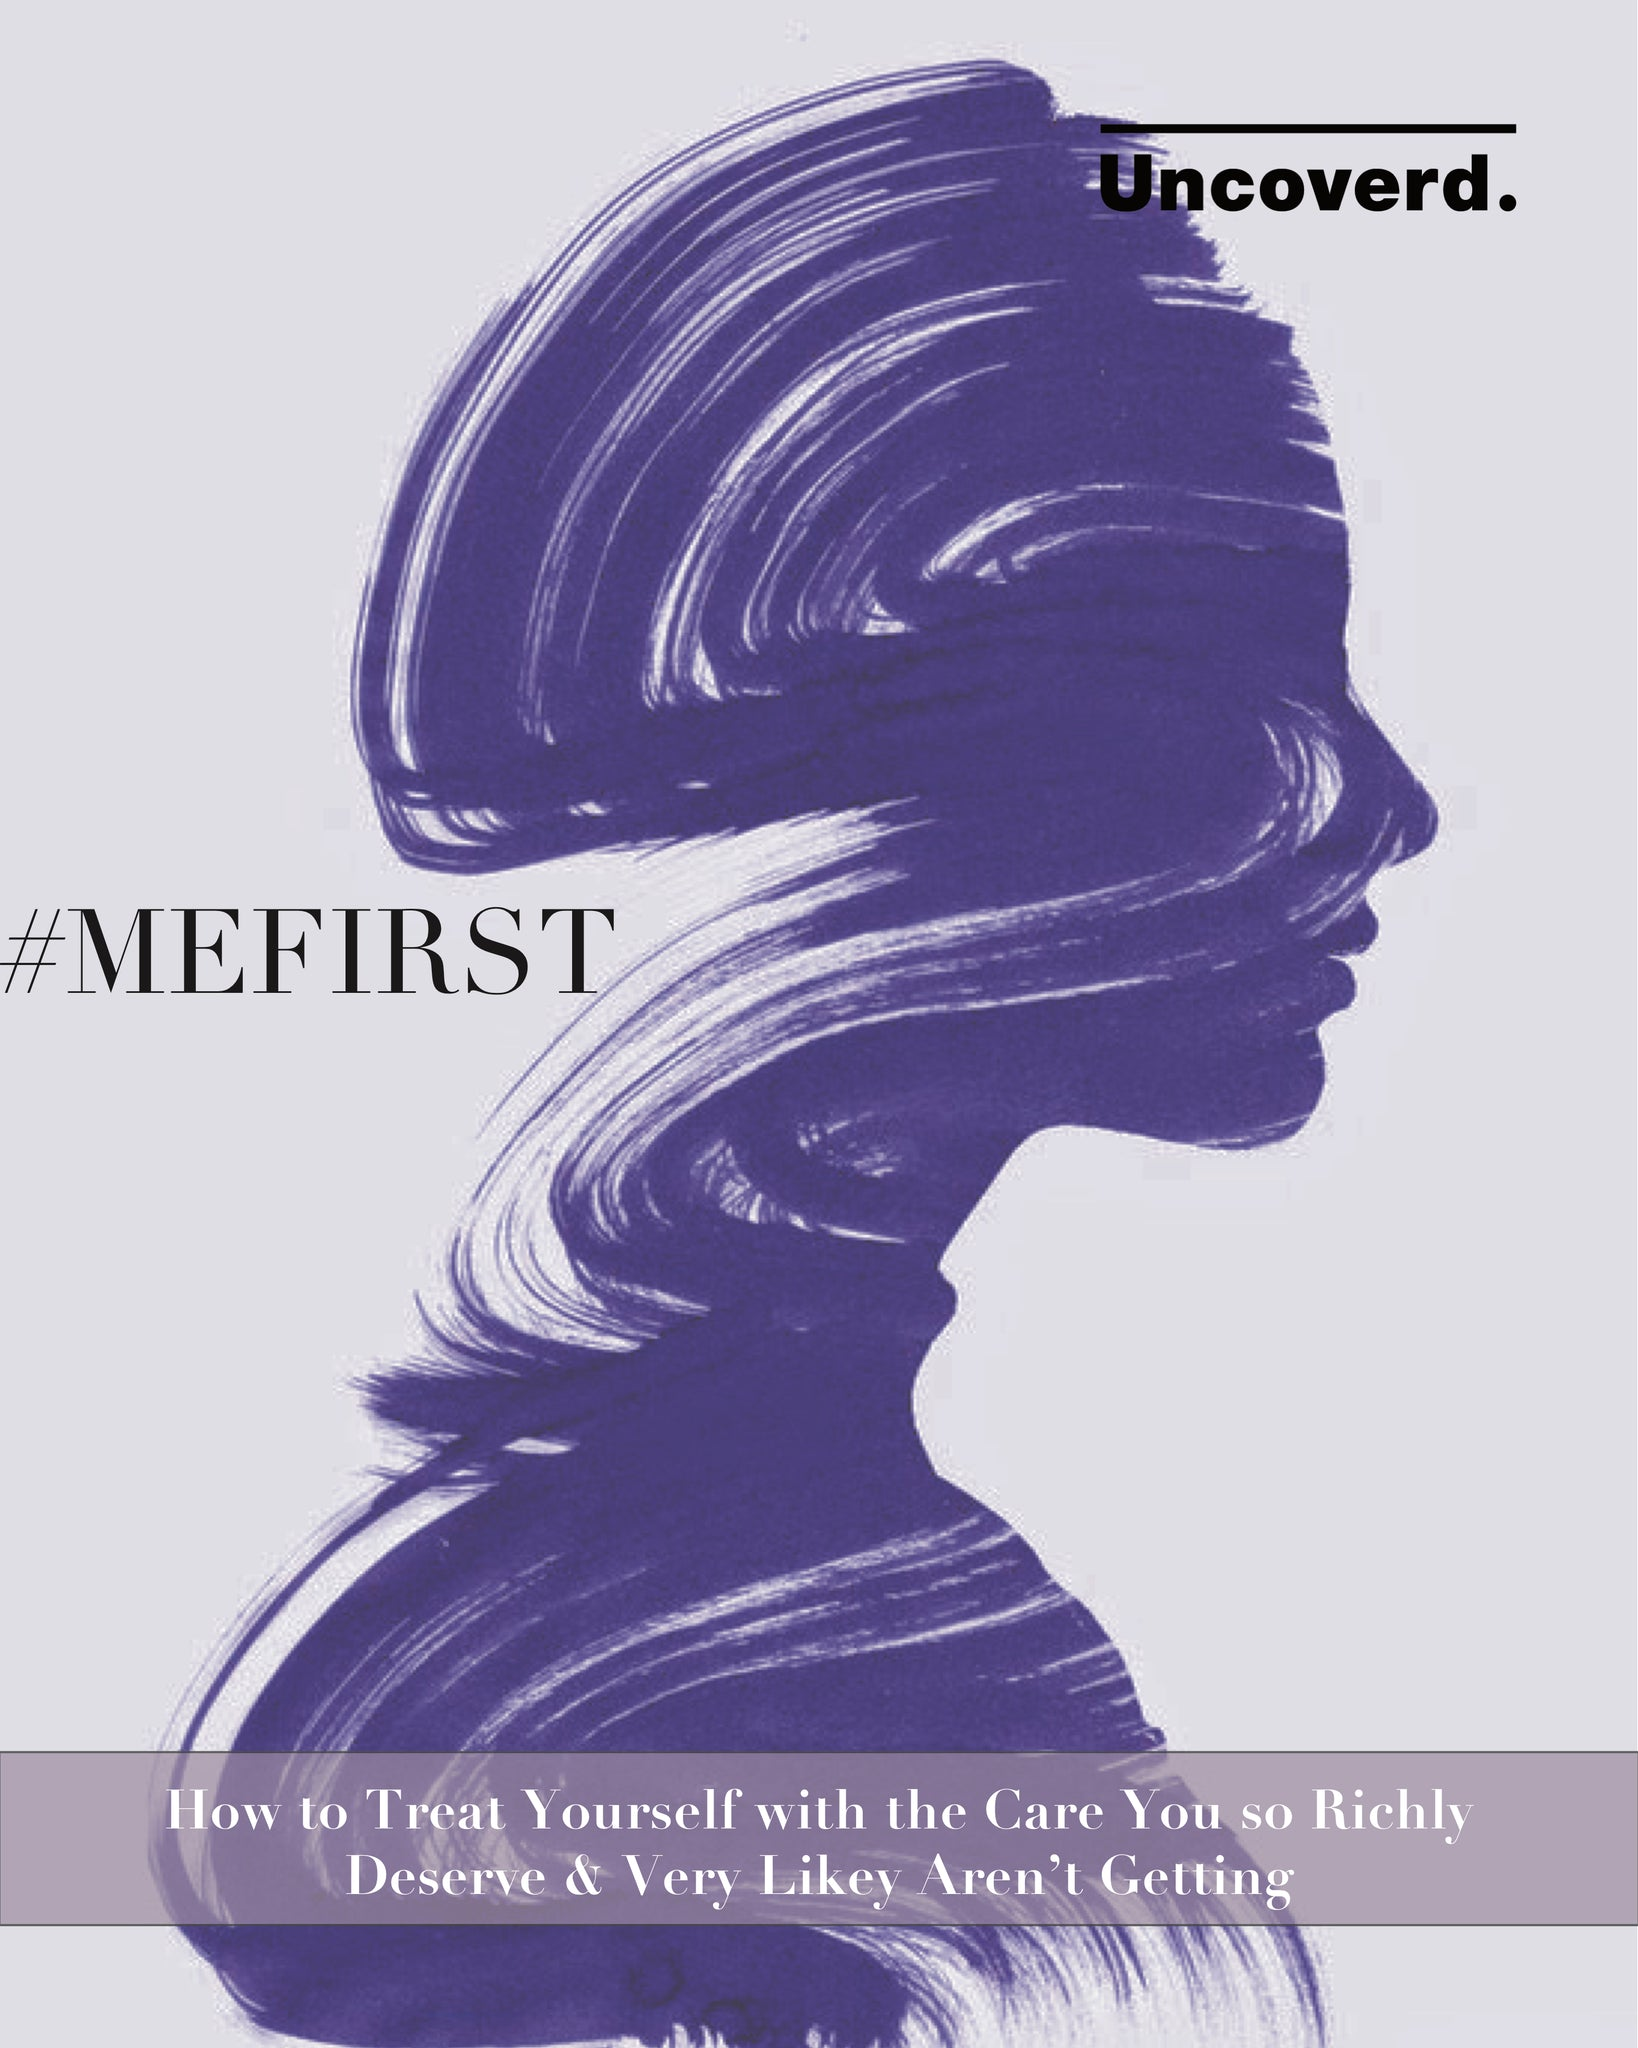 80% of New Year's Resolutions Fail by February — Put Yourself First This Year to Achieve Yours #MEFIRST